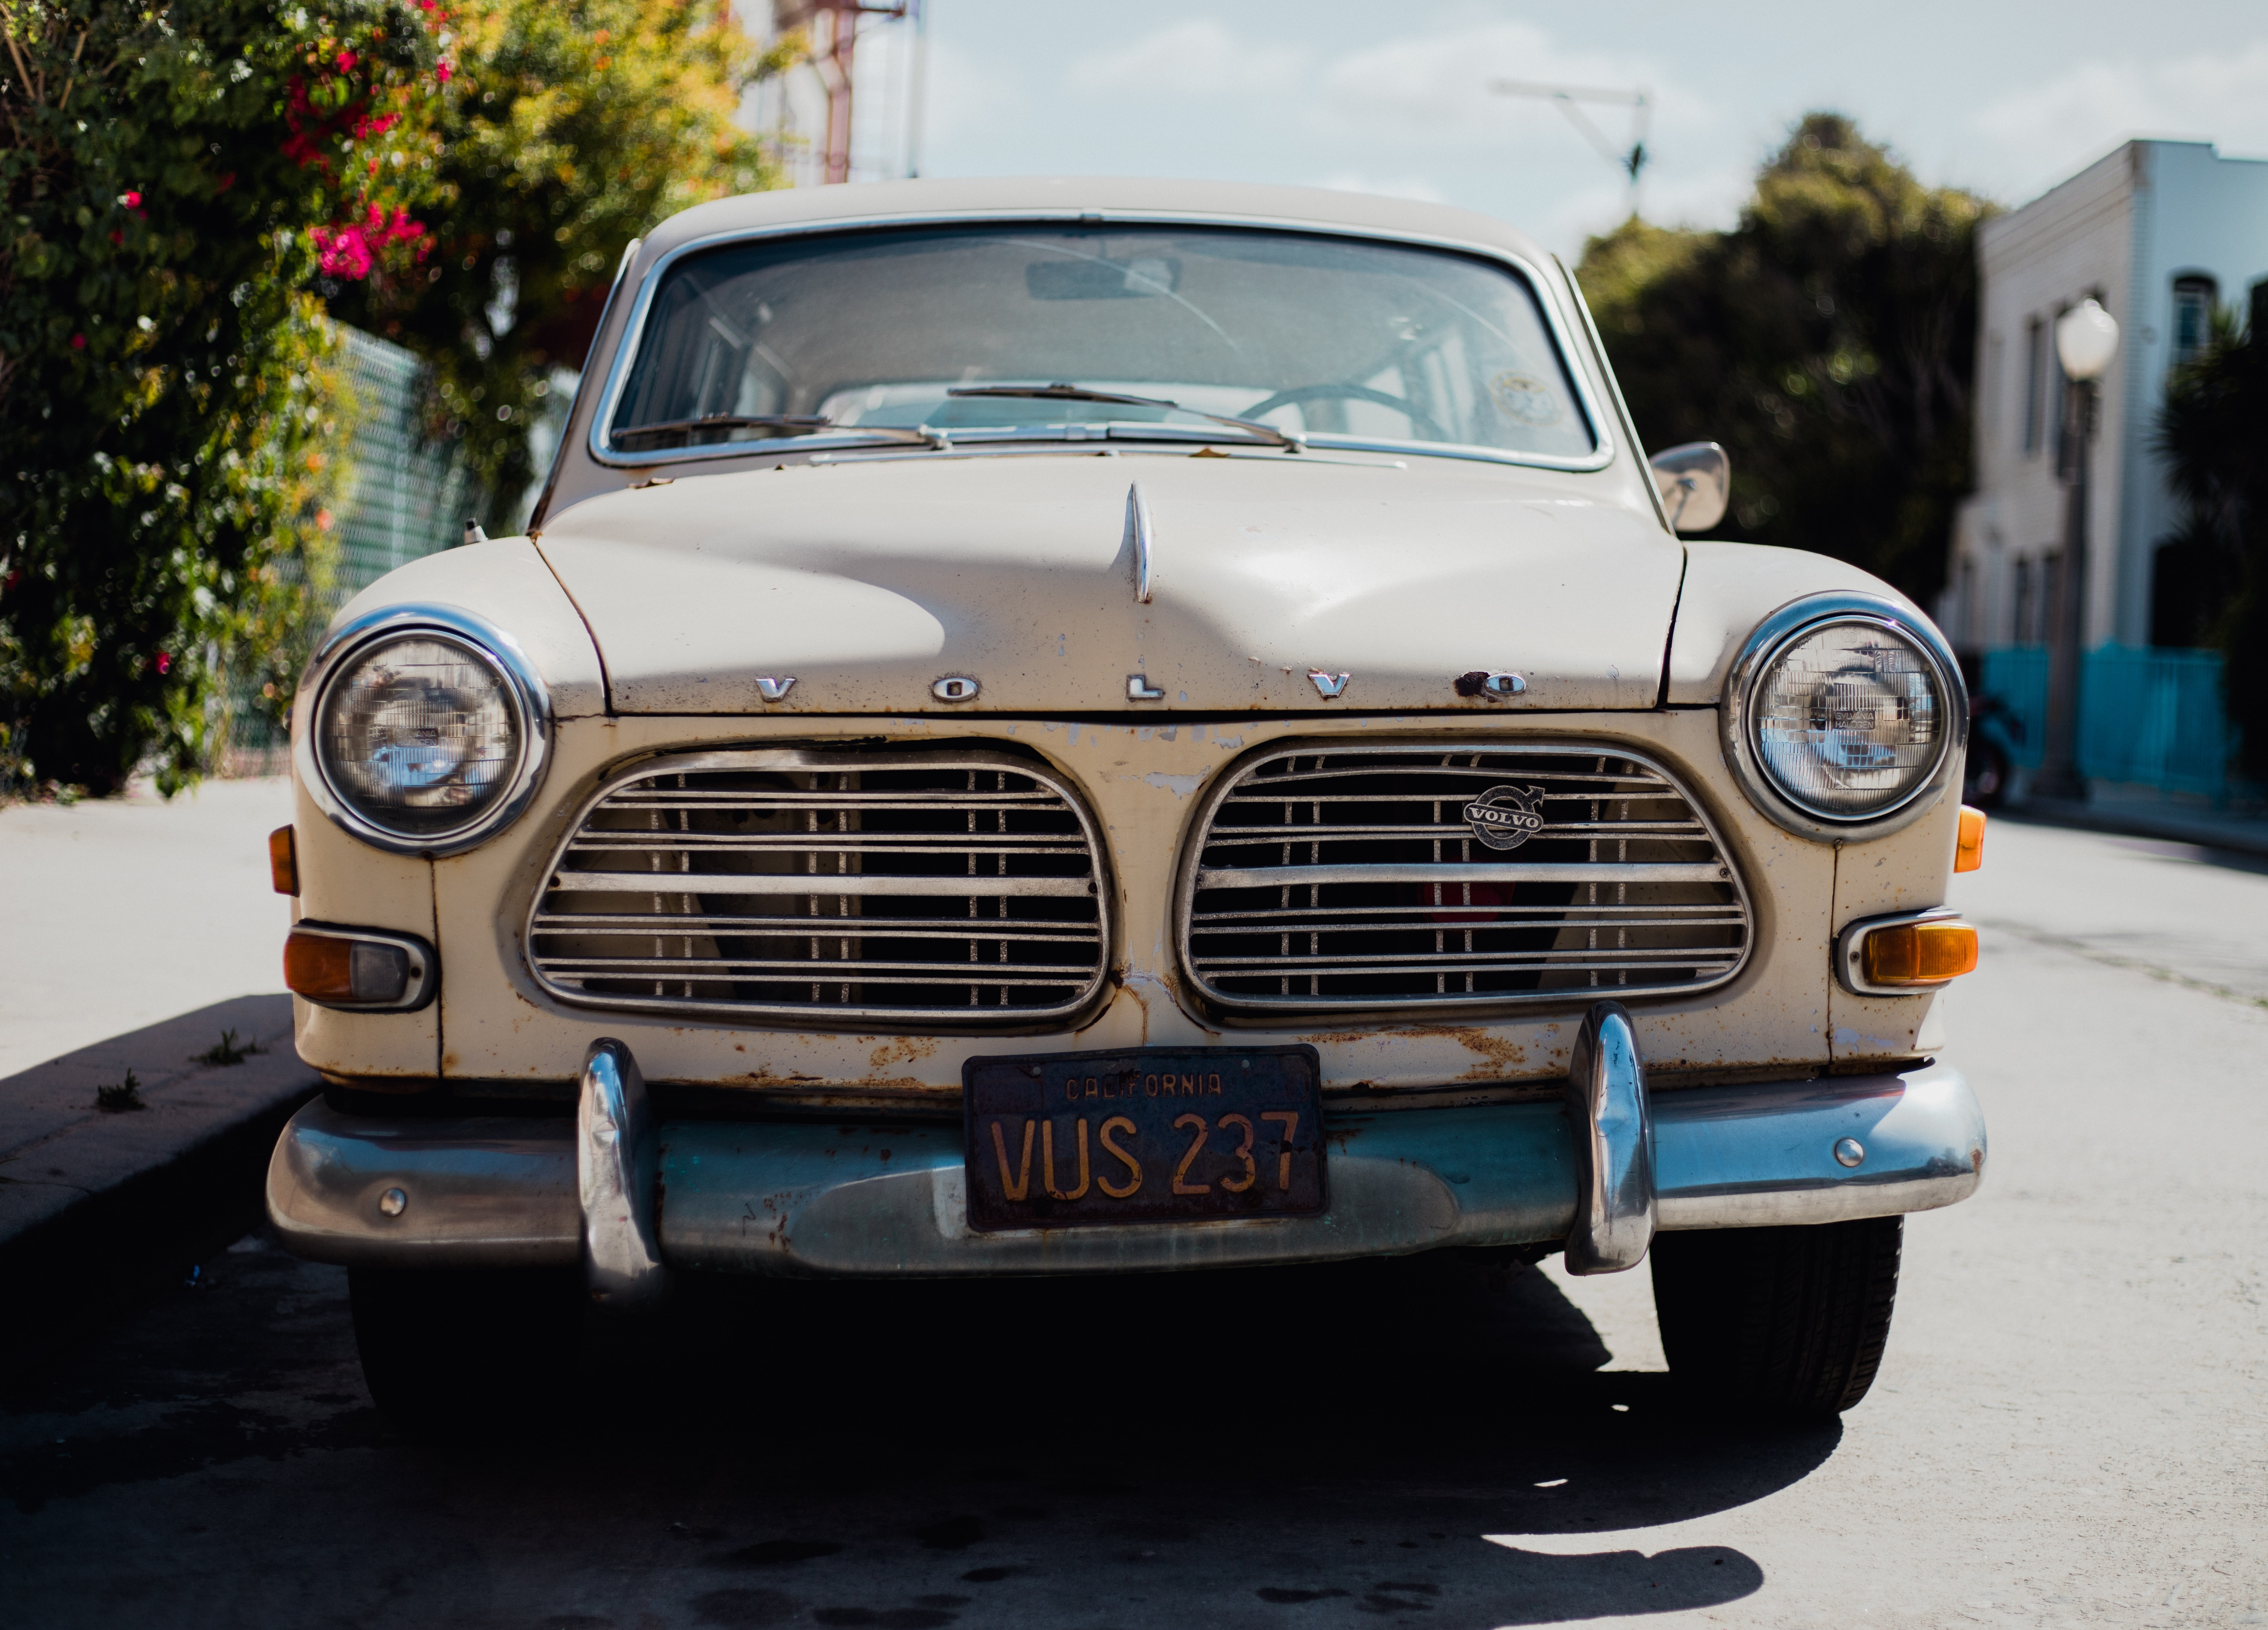 Front view of a white vintage Volvo.